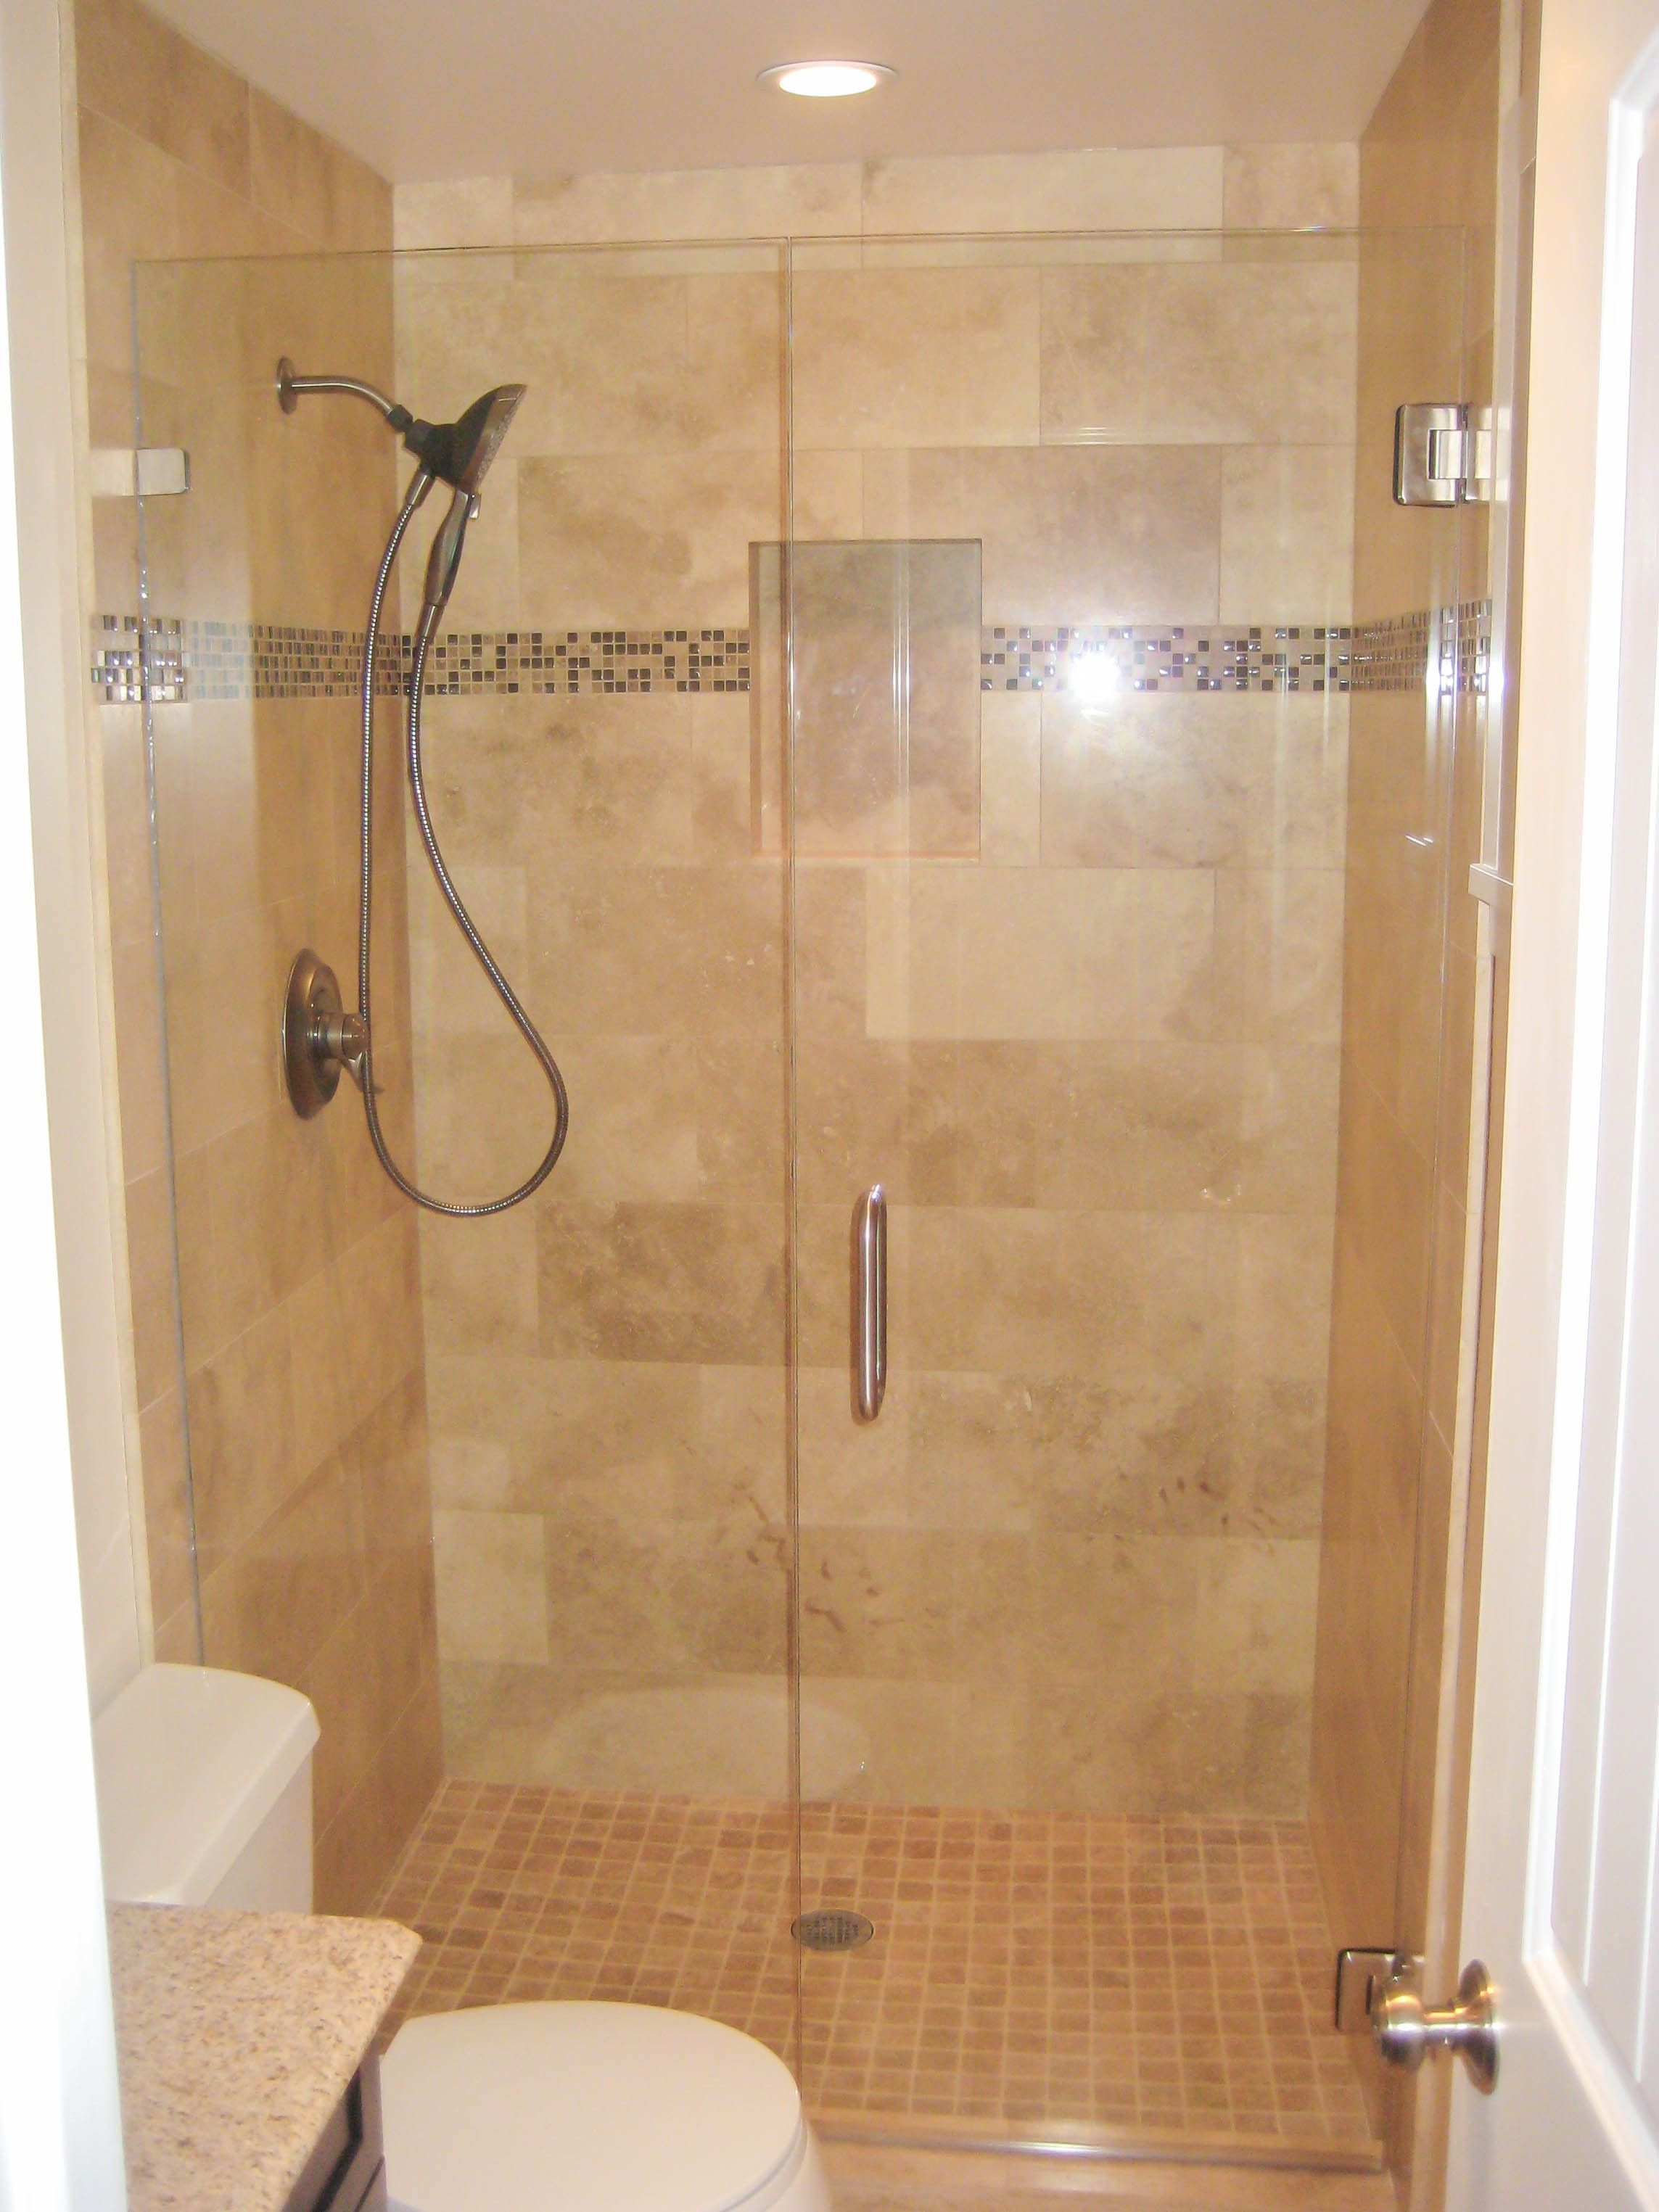 Bathroom Ideas With Corner Shower Only Small Home Design Pinterest